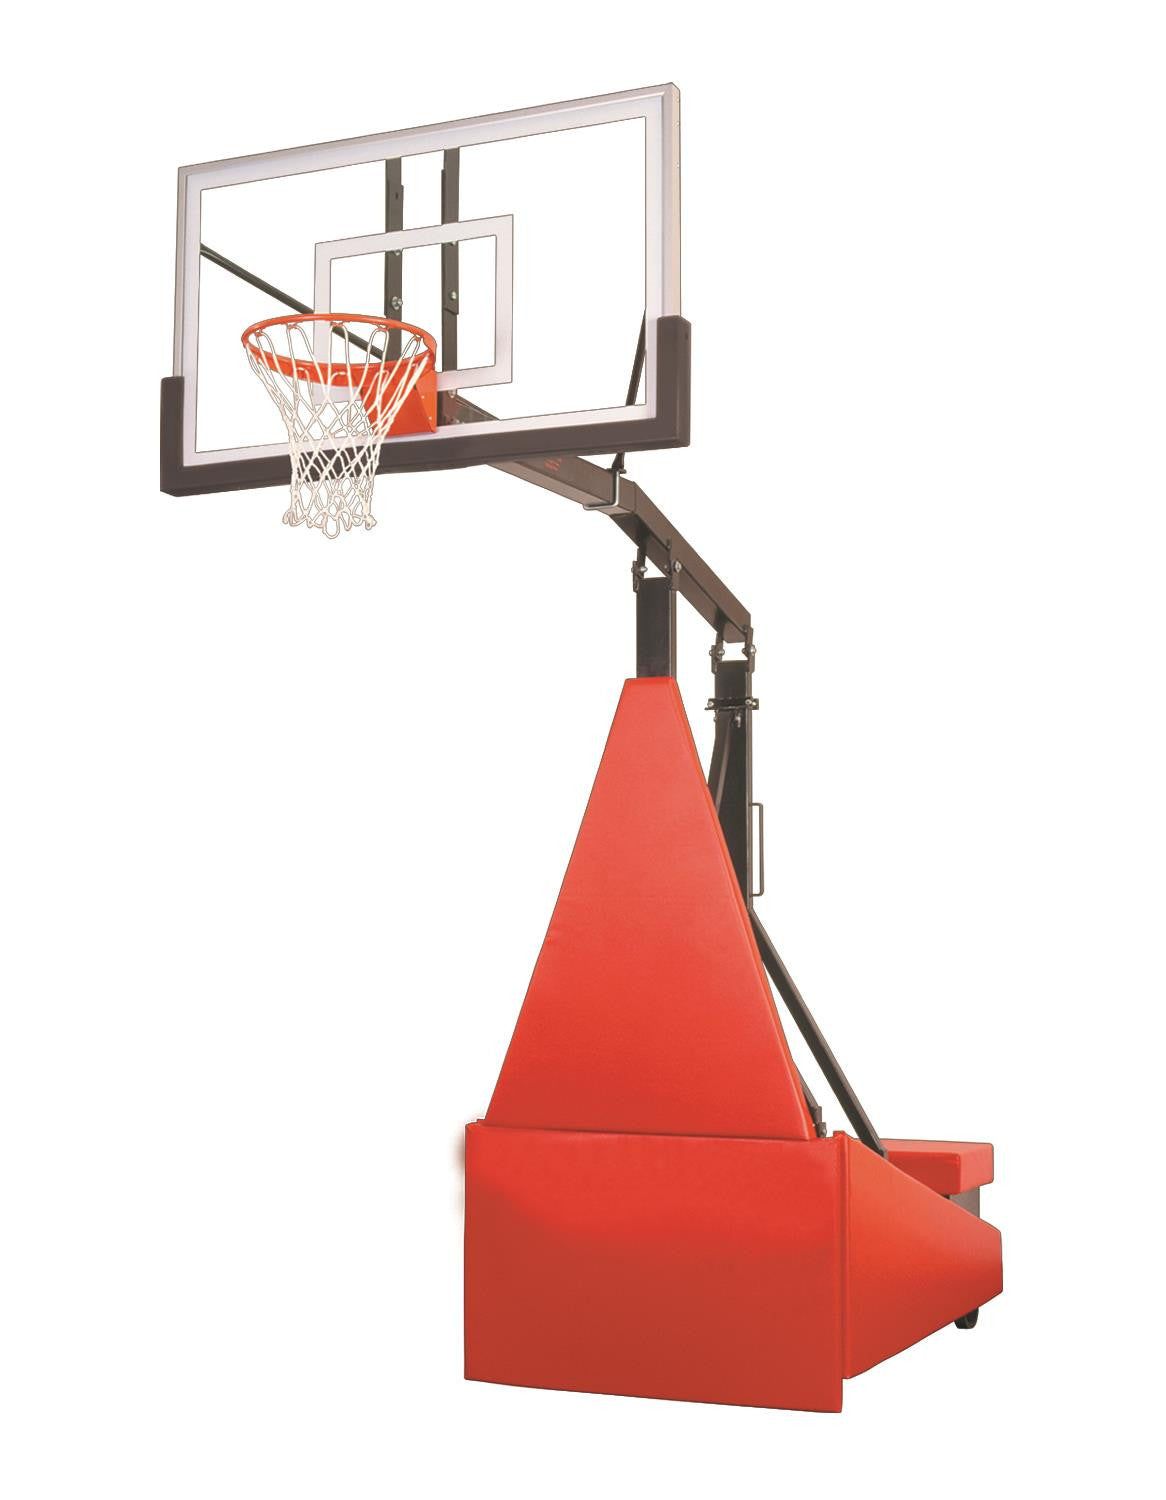 First Team Storm Select Portable Adjustable Basketball Hoop 60 inch Acrylic